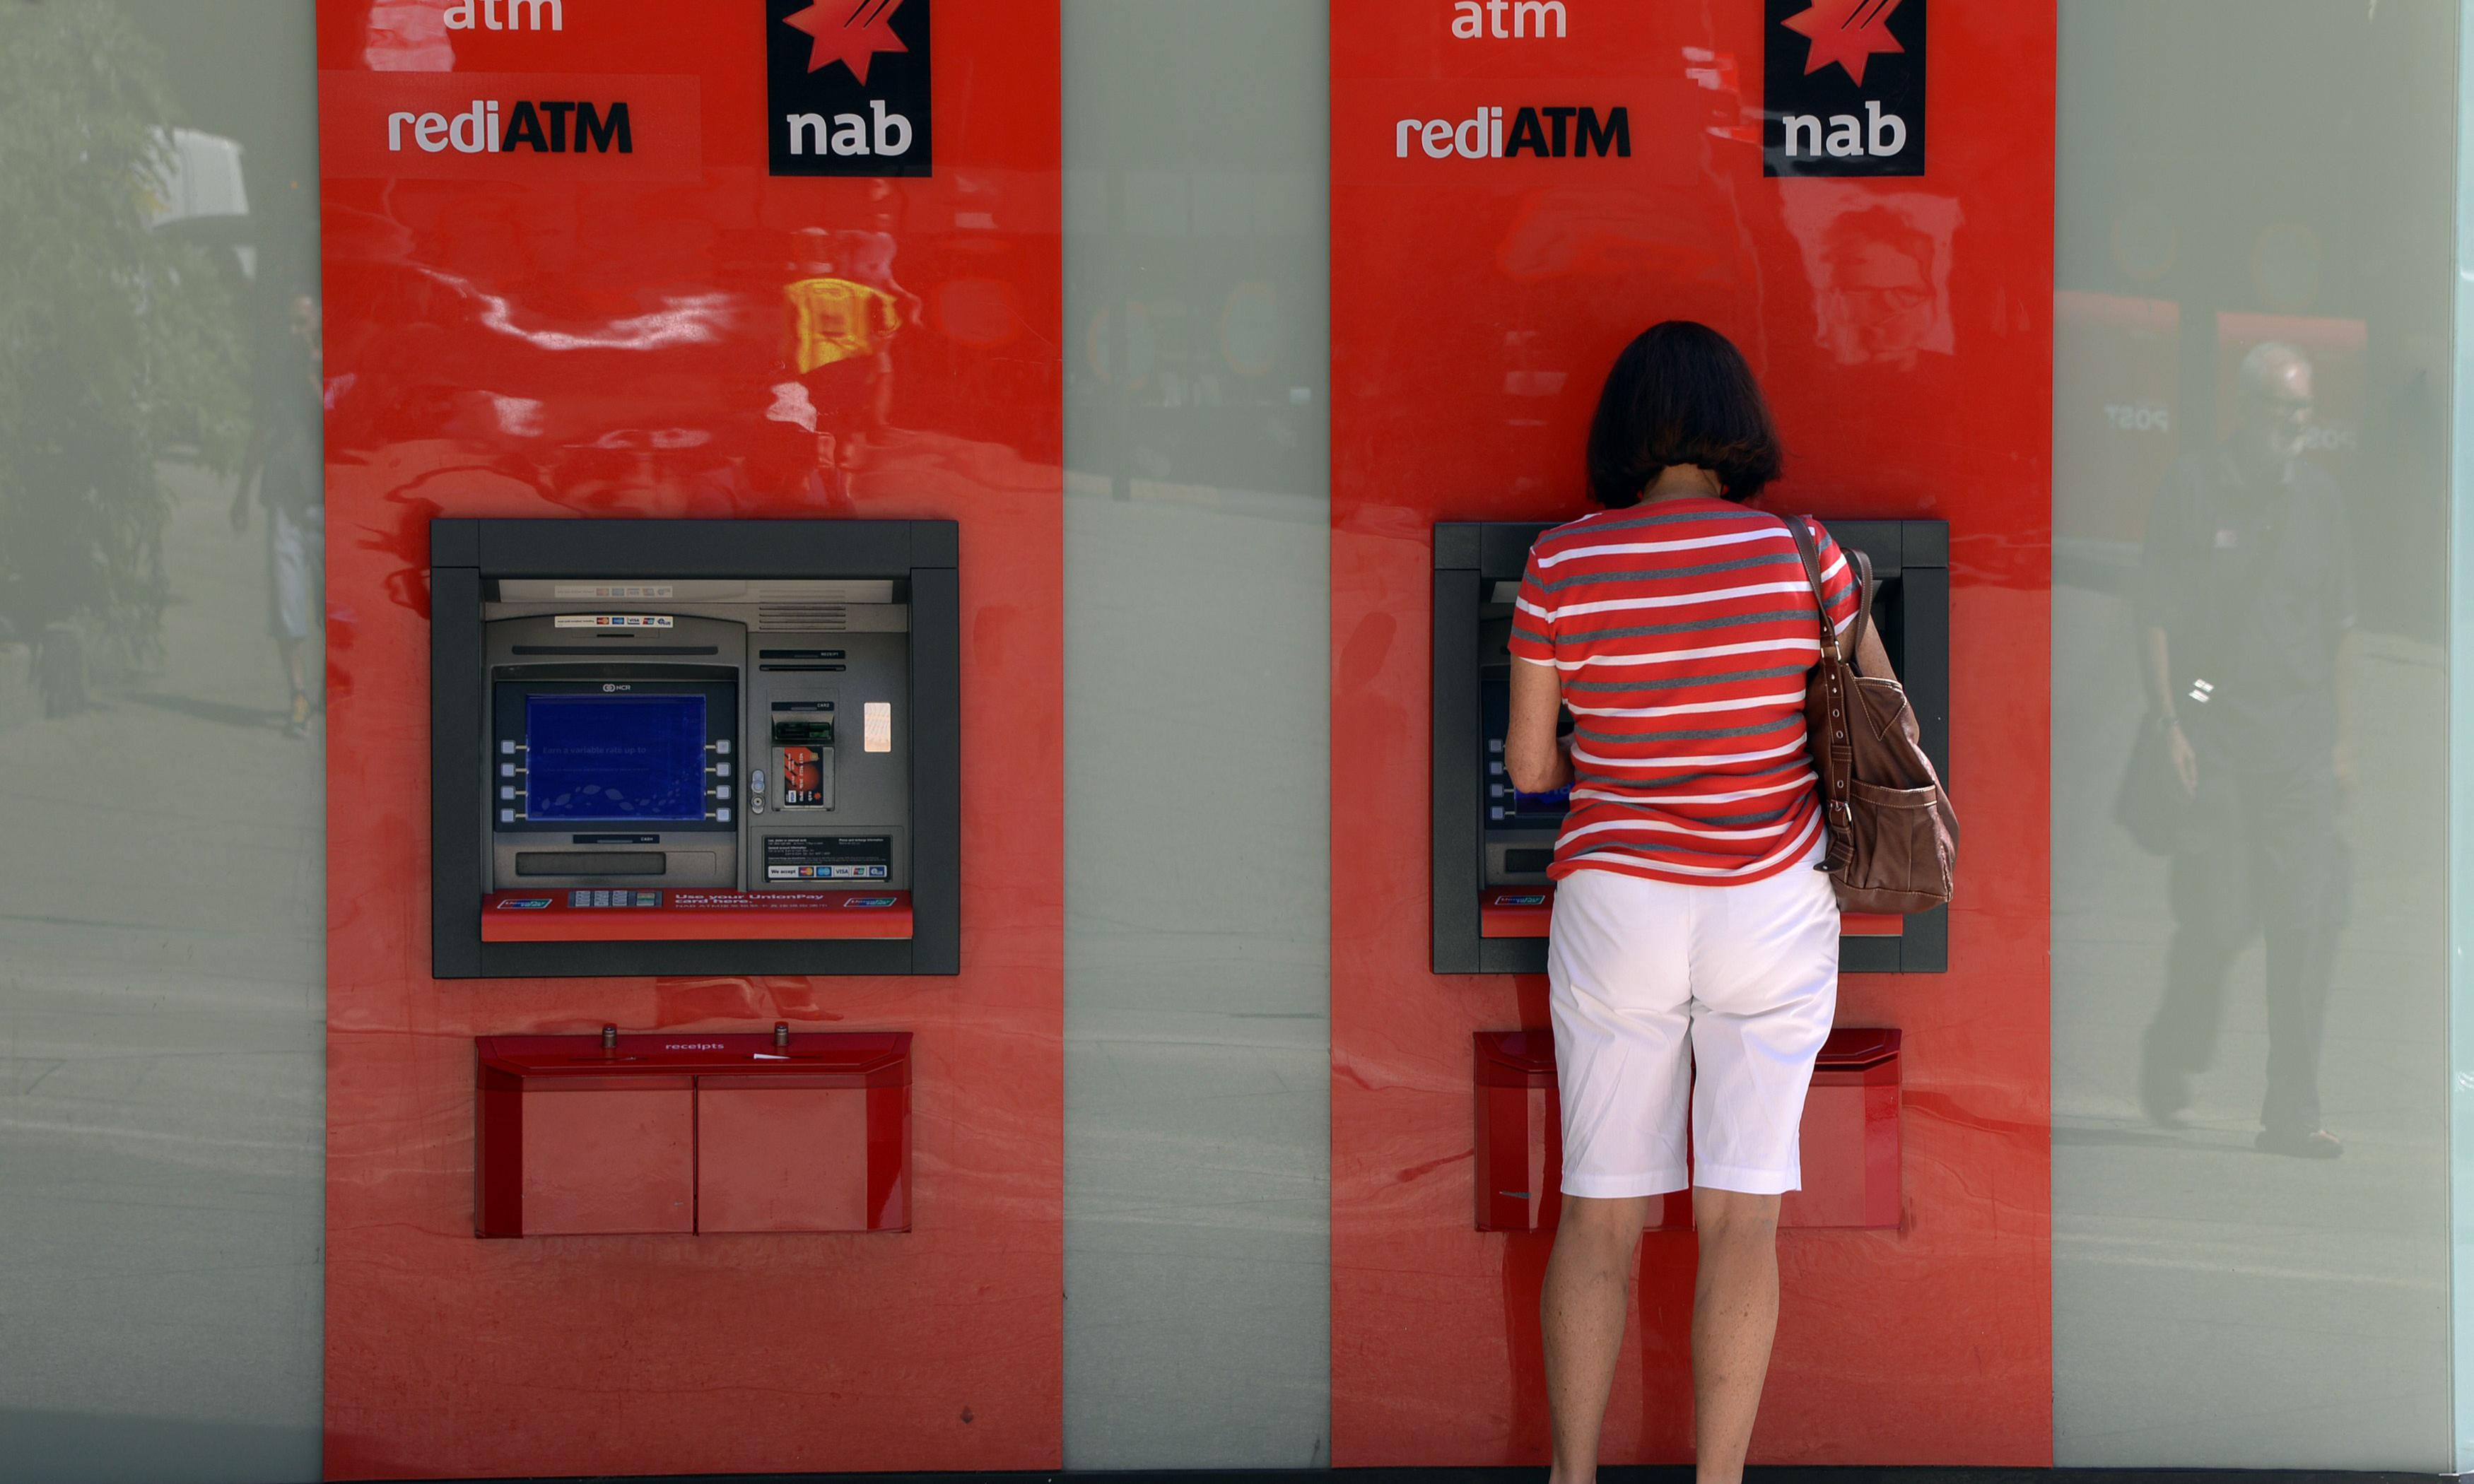 Asic sues NAB over $24bn home loan 'introducer' scheme